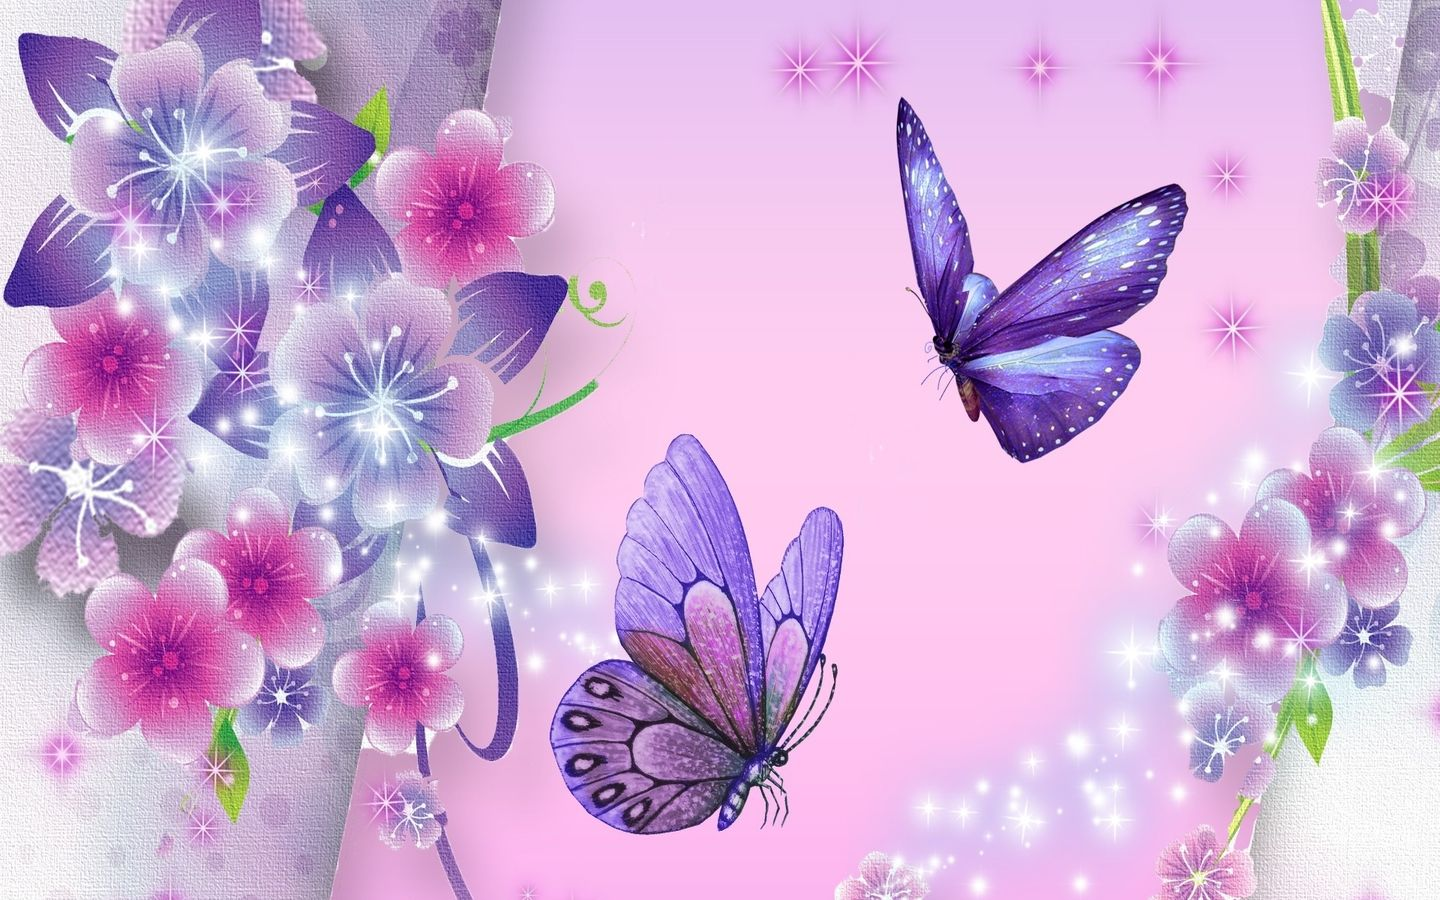 Download 250 High Quality Butterfly Wallpaper The 1440x900